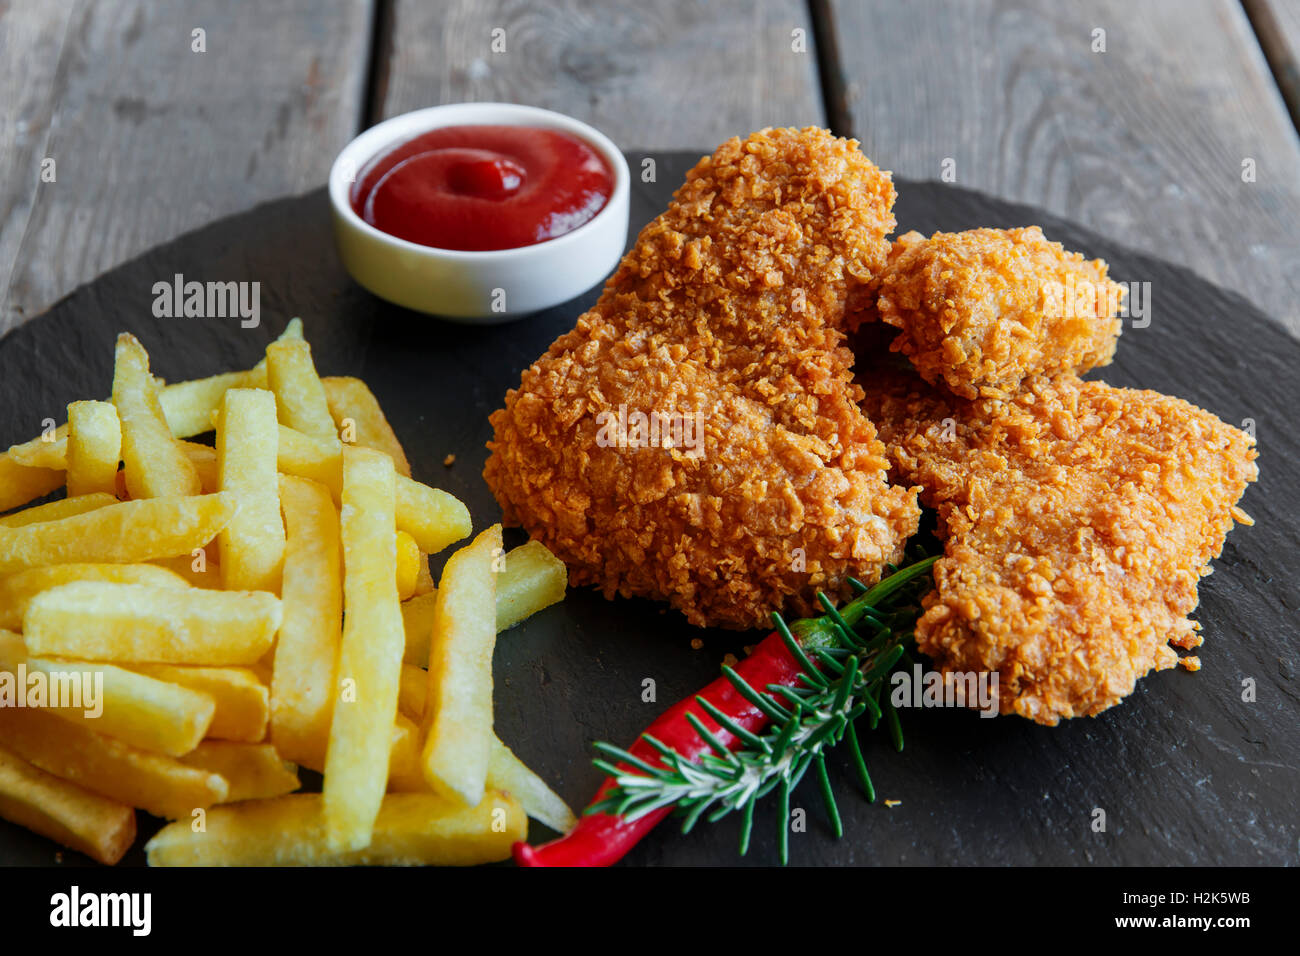 Breaded crispy chicken wing fried french fries sauce - Stock Image